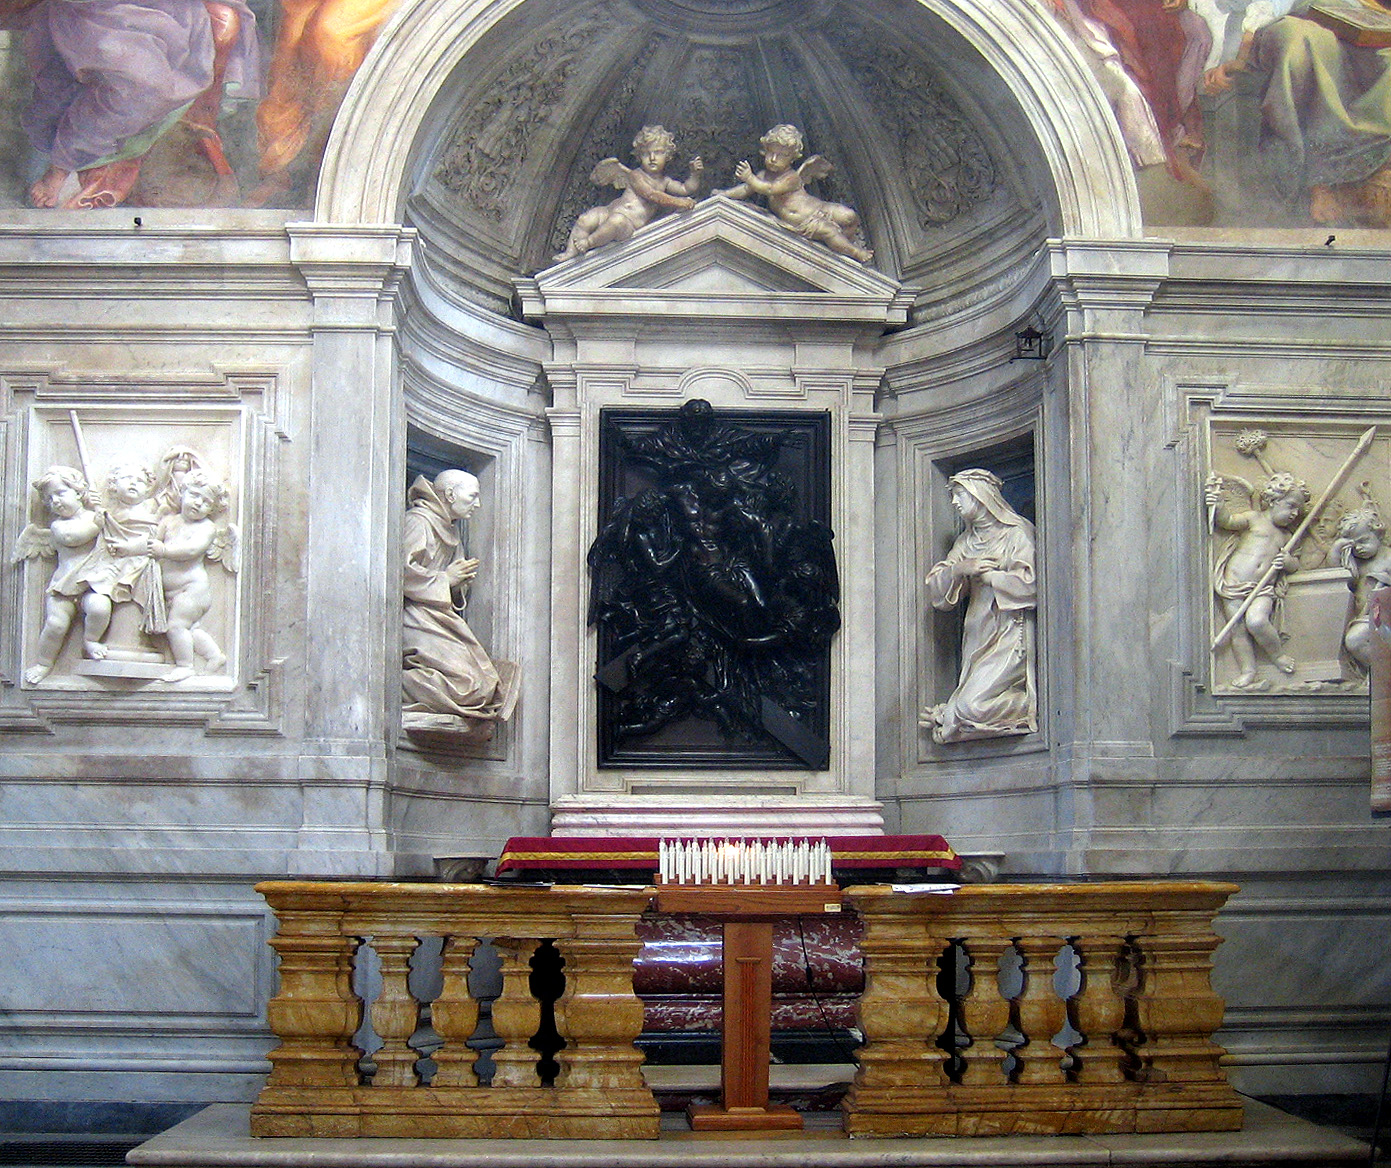 File:Santa Maria del Popolo, Chigi chapel.jpg - Wikipedia, the ...